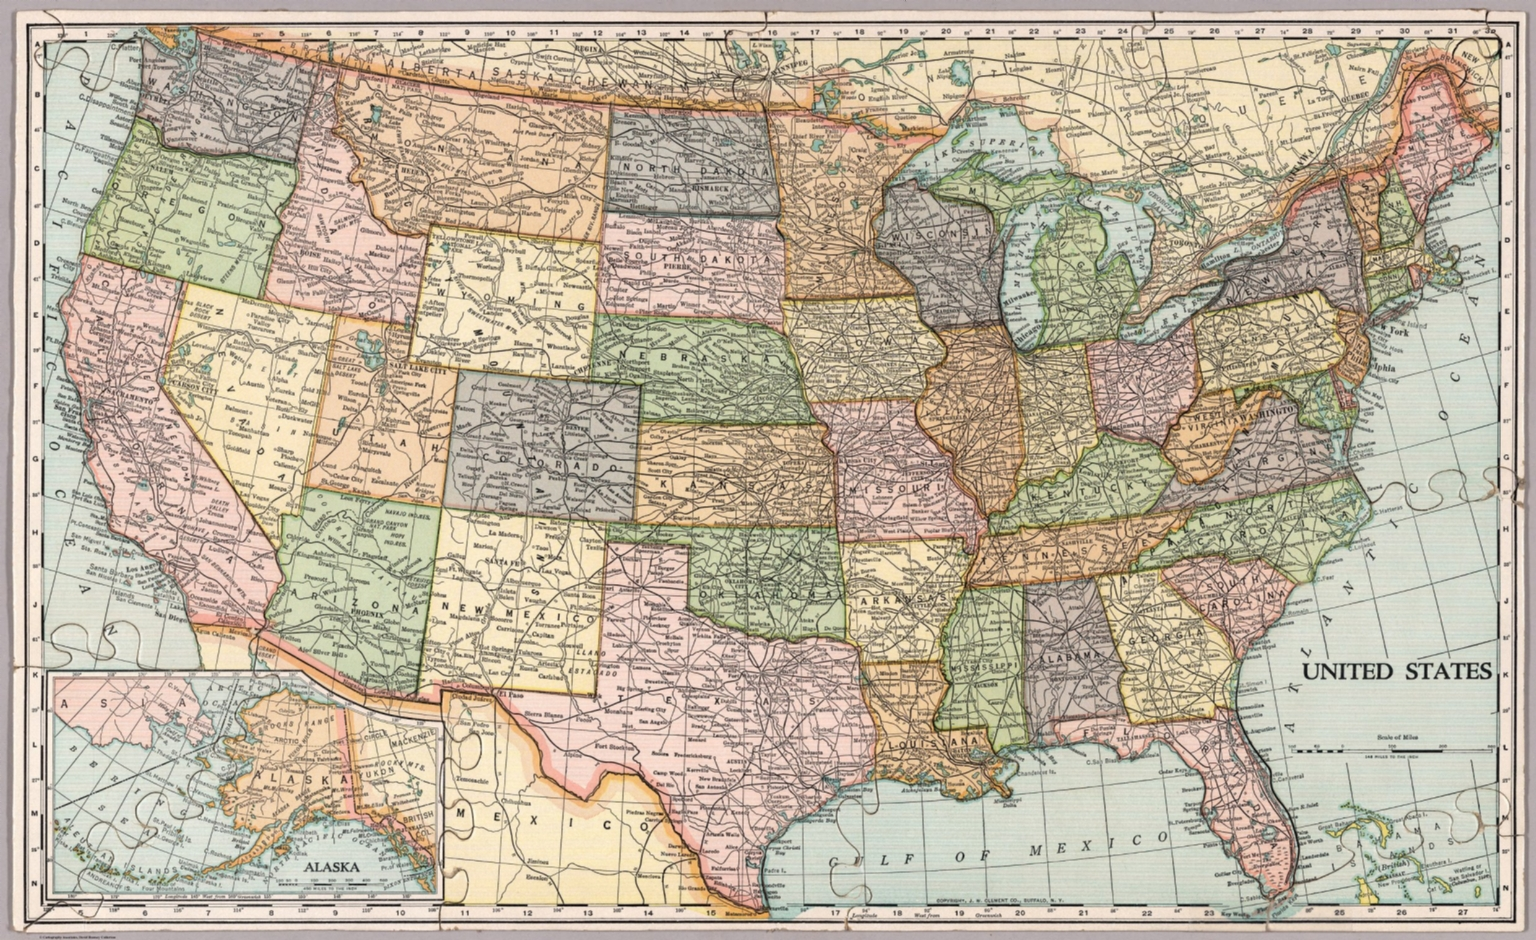 United States map. Die-Cut on State Lines. - David Rumsey Historical ...